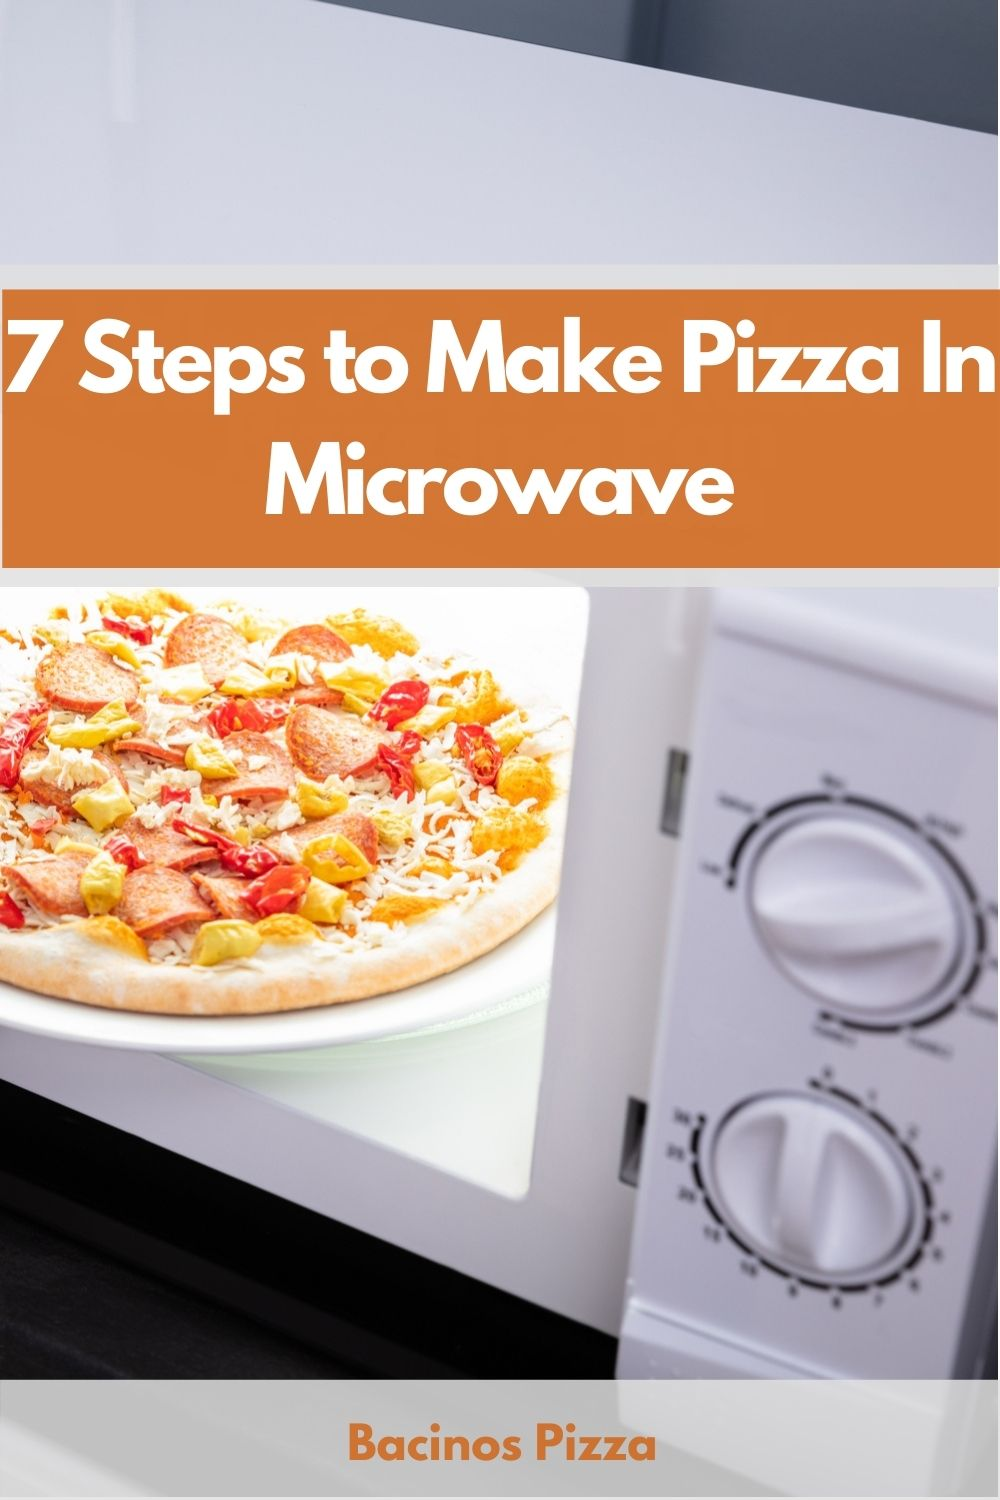 7 Steps to Make Pizza In Microwave pin